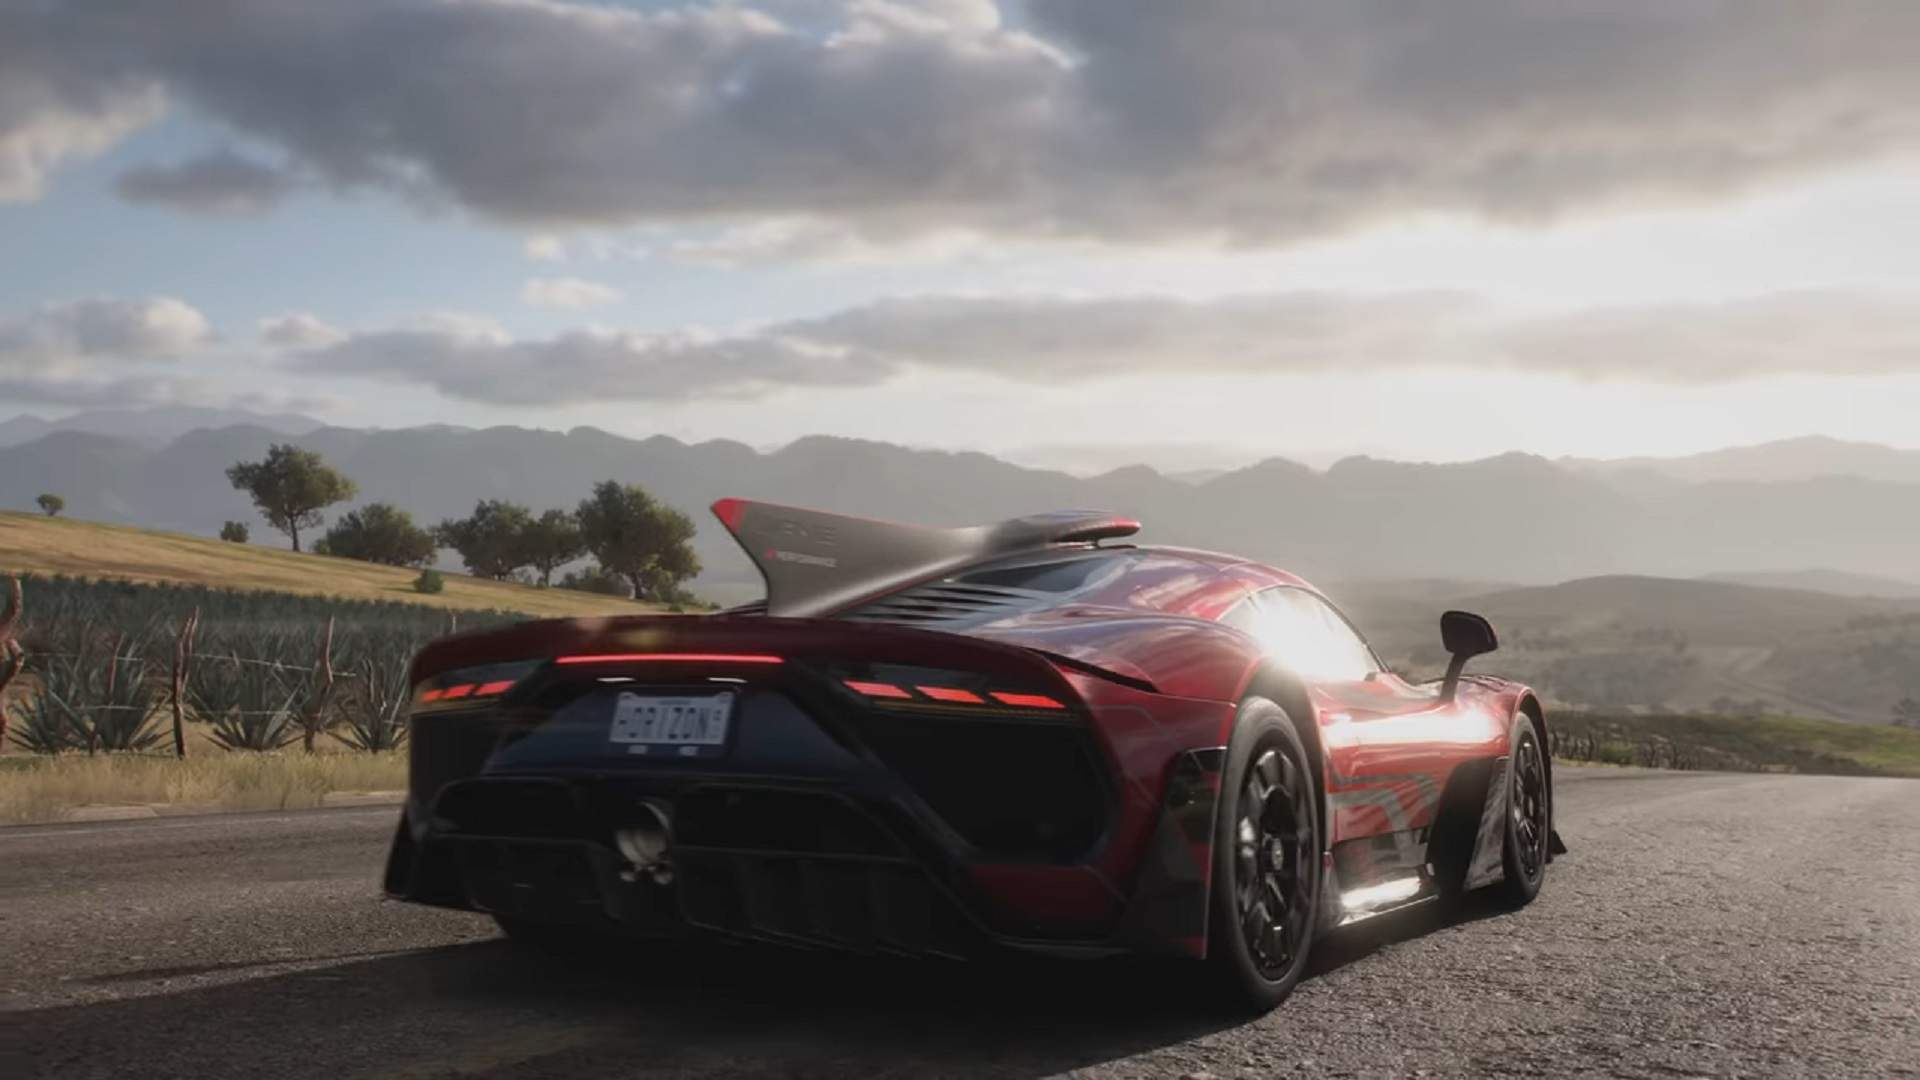 Forza Horizon 5 nature sounds are perfect to read-study-race to